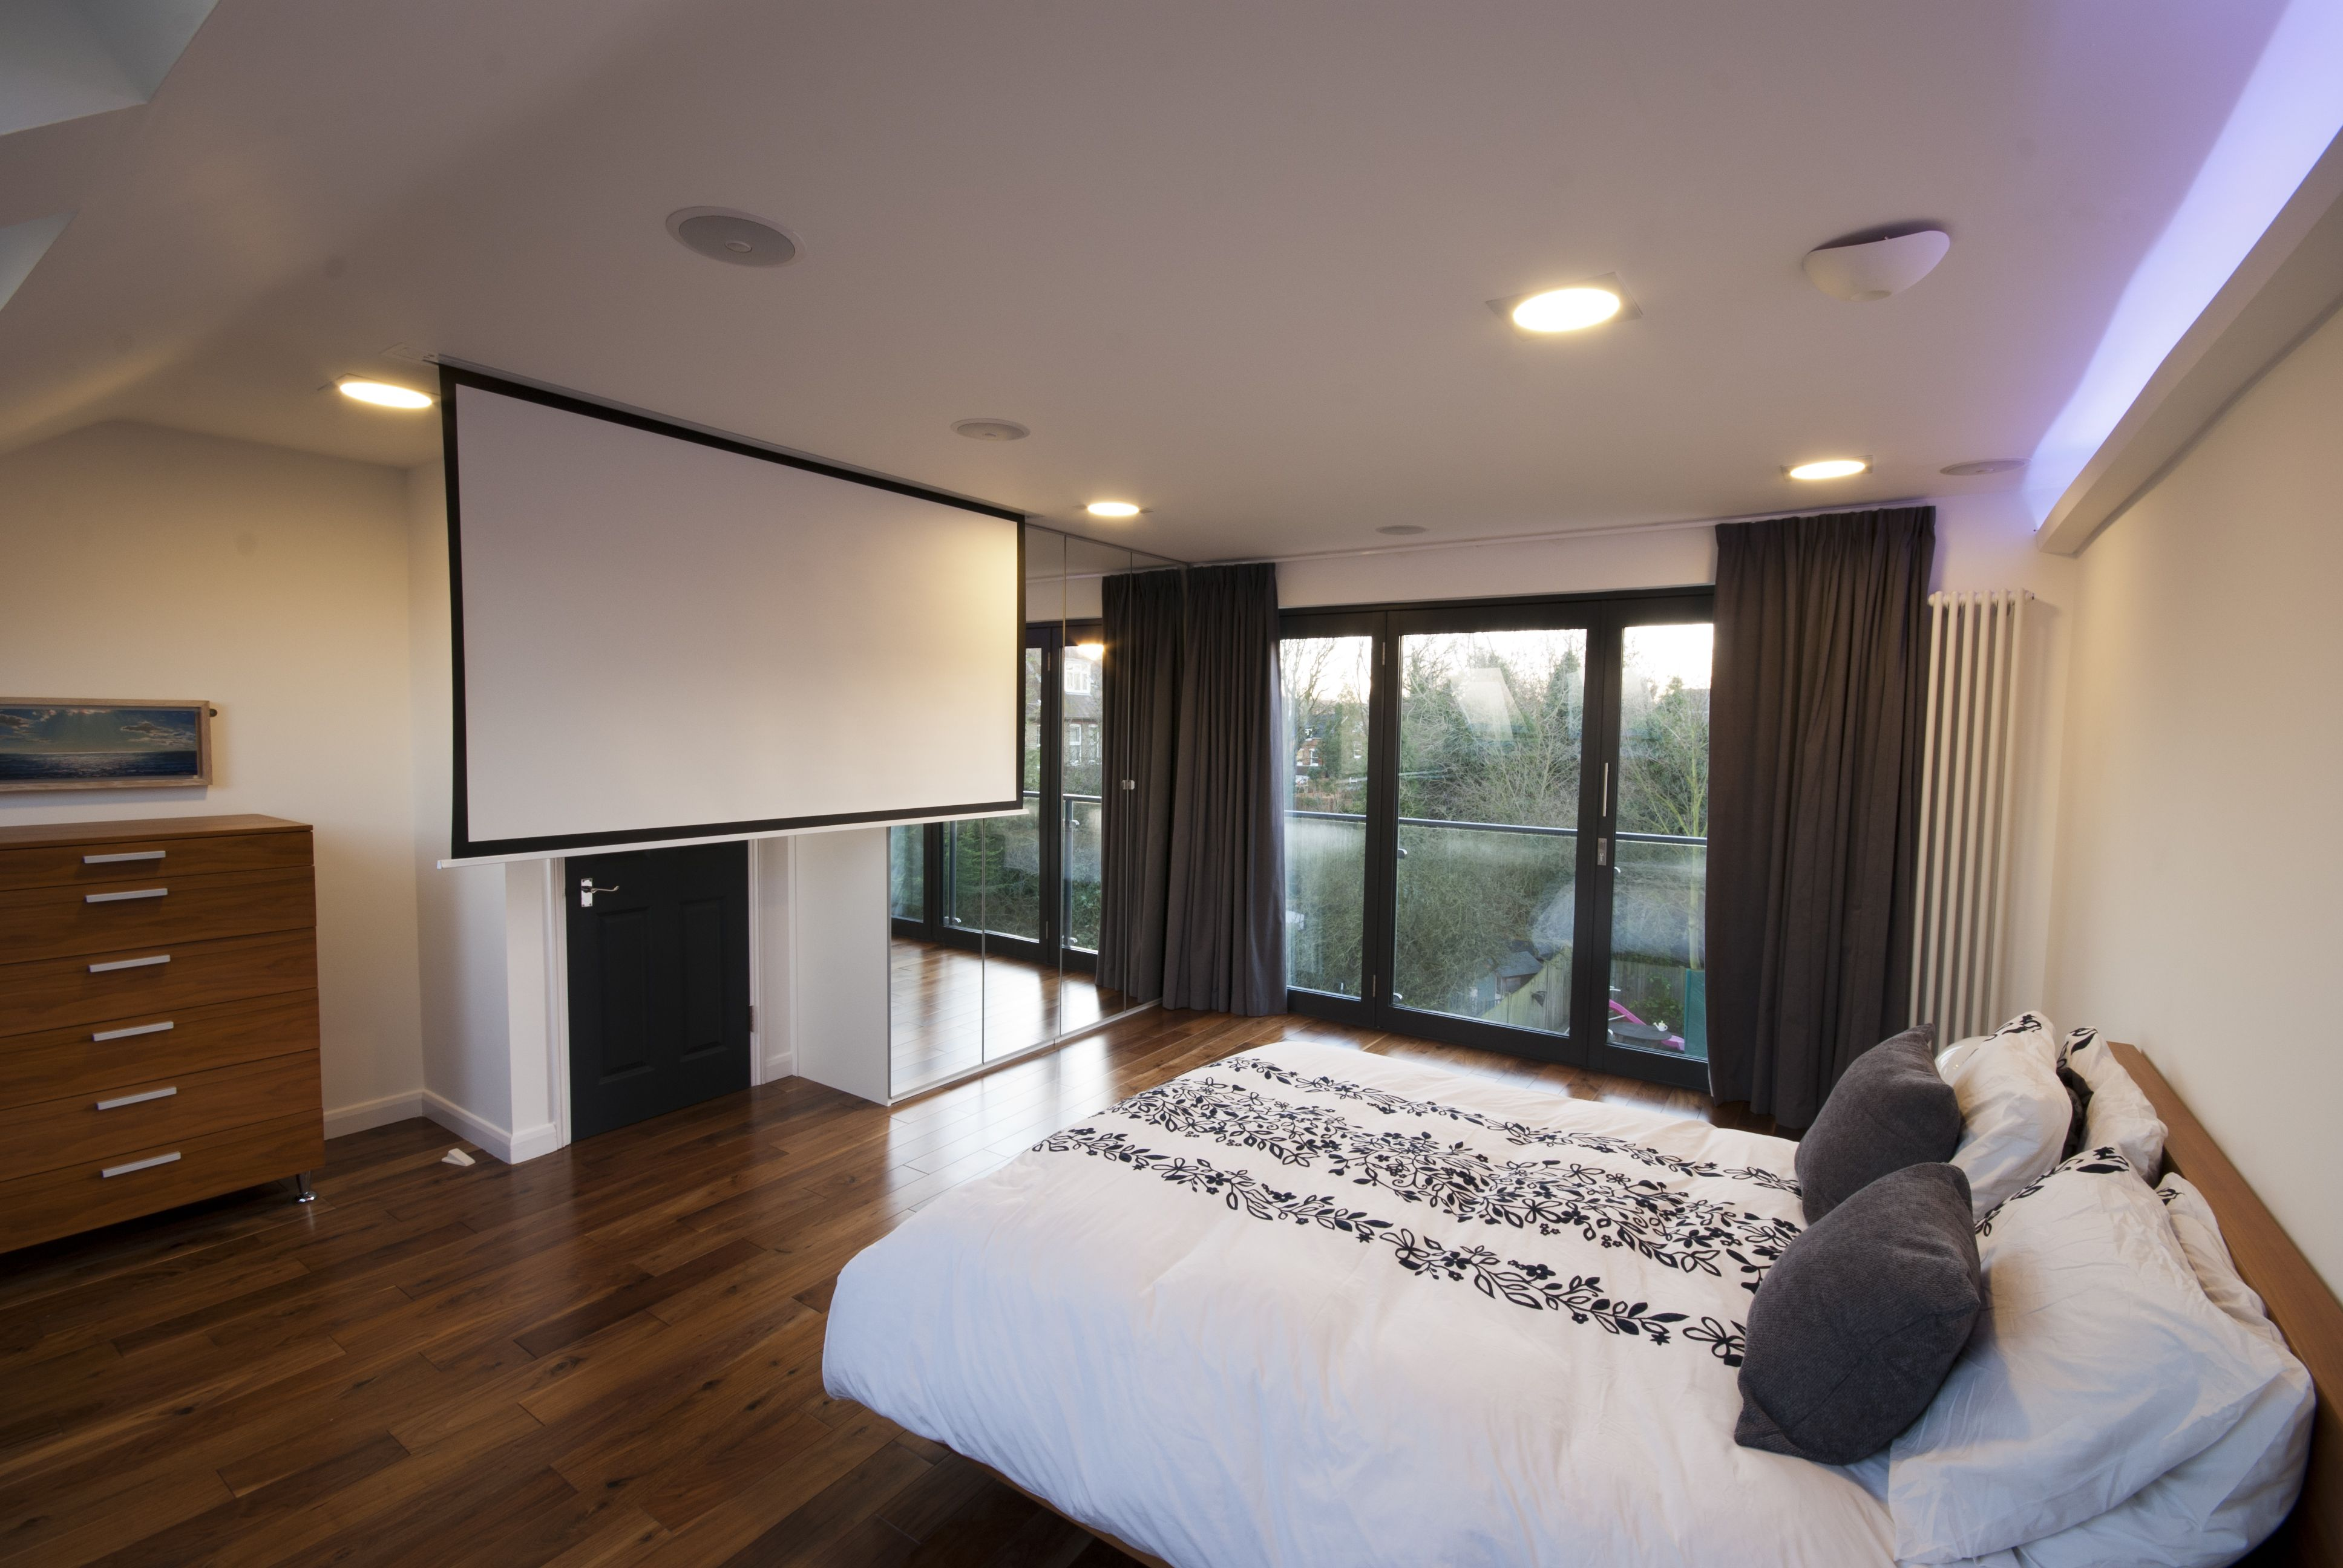 Loft Conversions Bedroom With French Doors And A Cinema Screen Built Into  The Ceiling